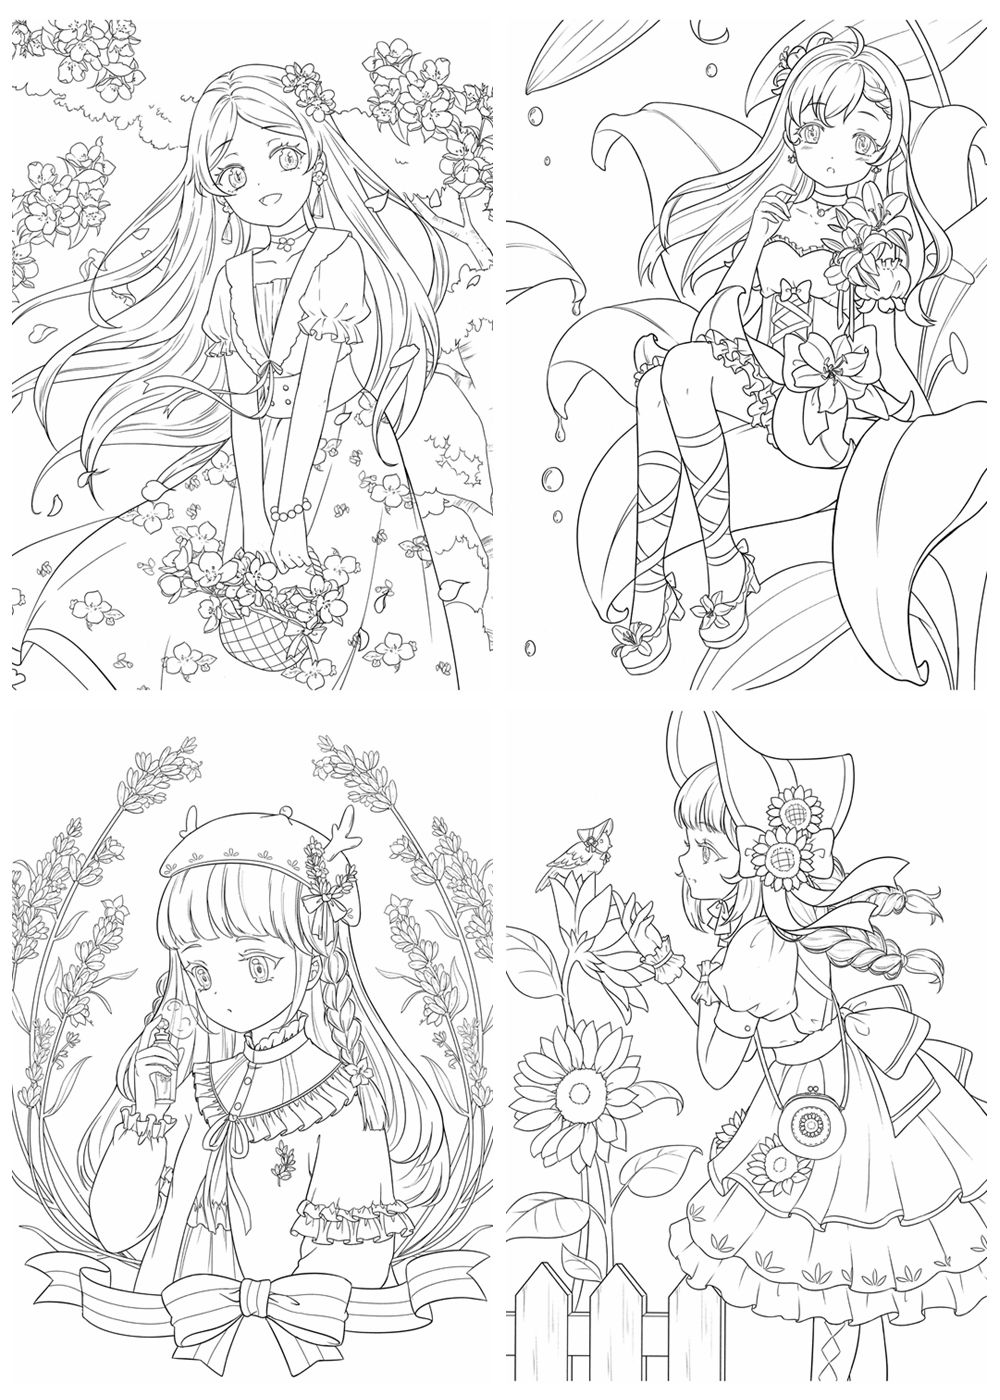 381. Coloring Book of Flower Fairy and Dresses ...